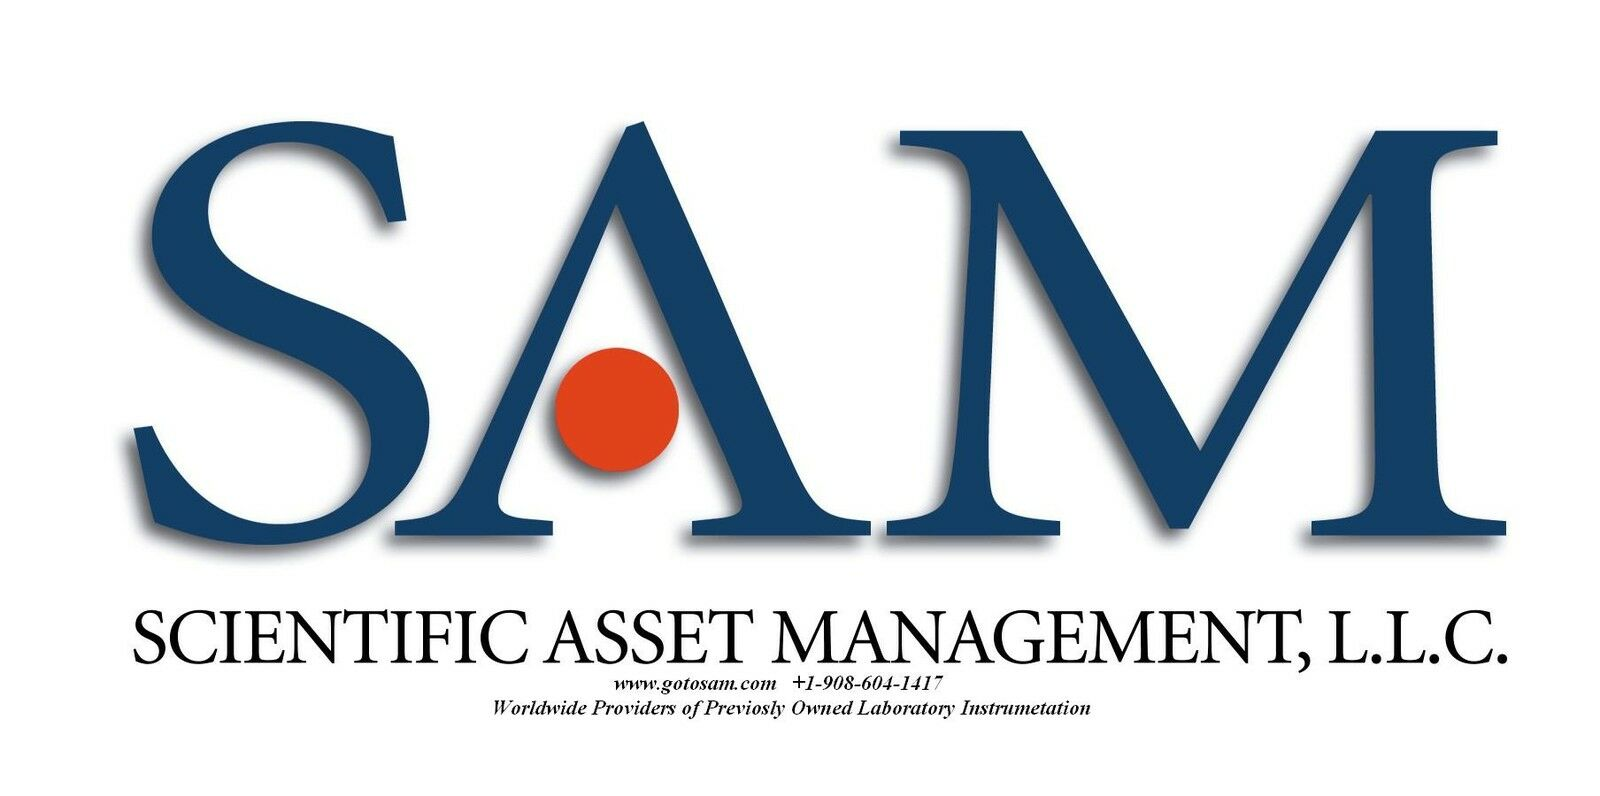 Scientific Asset Management